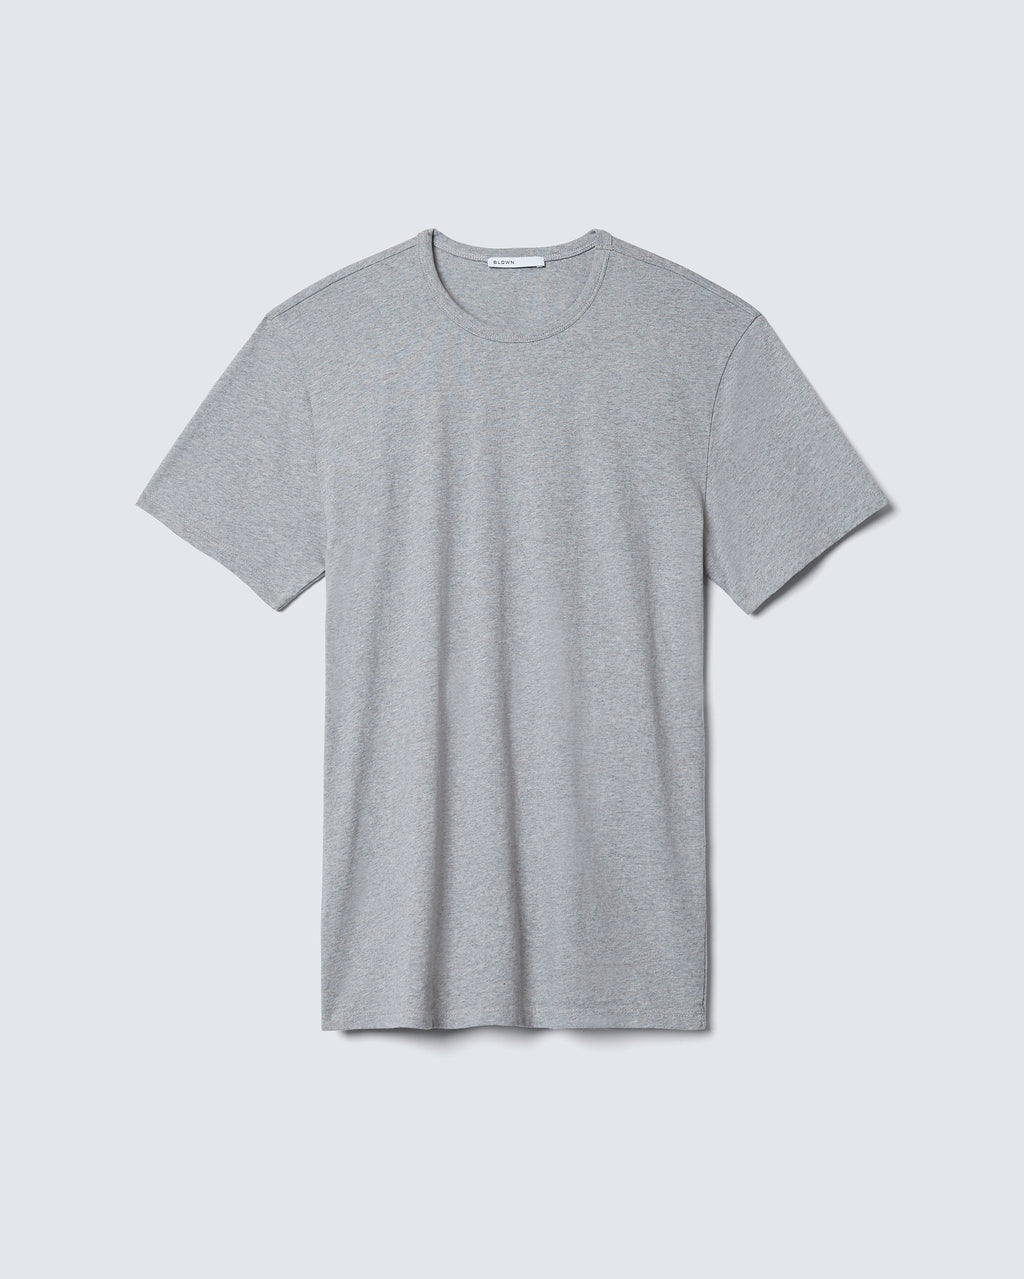 The Modern Slim Tee in Heather Grey